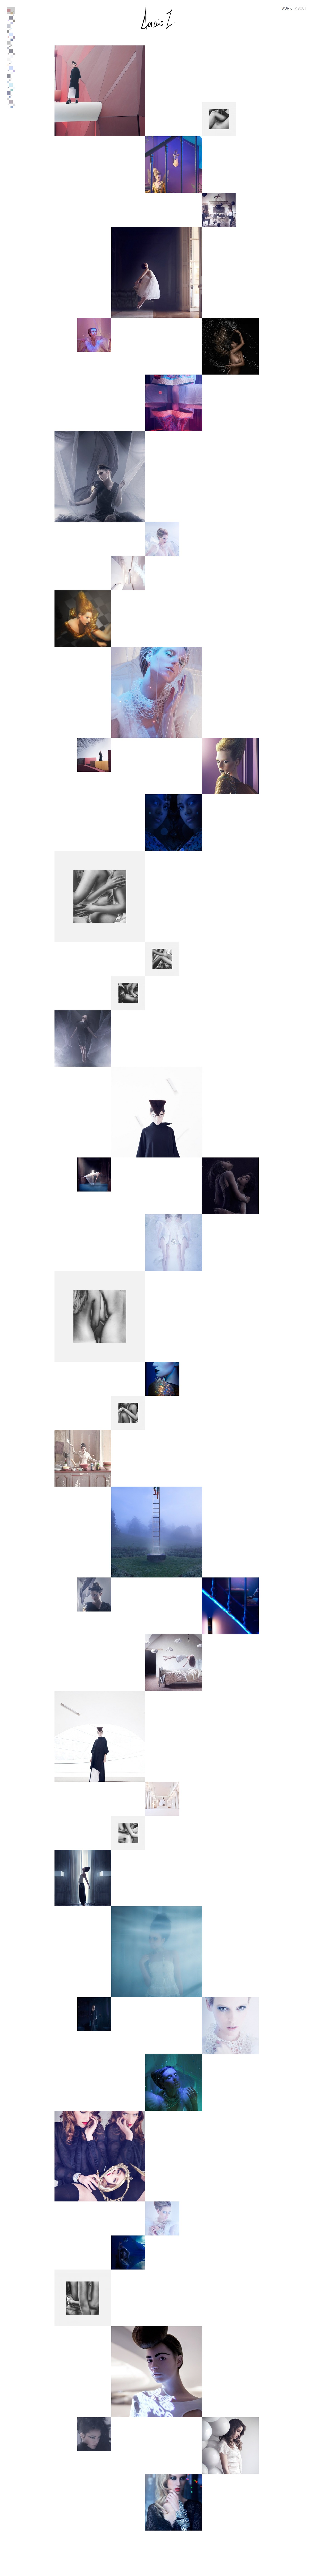 Anaïs Zamboni — Portfolio \\ Such a nice & clean photographer website with smooth transitions. http://anaiszamboni.com